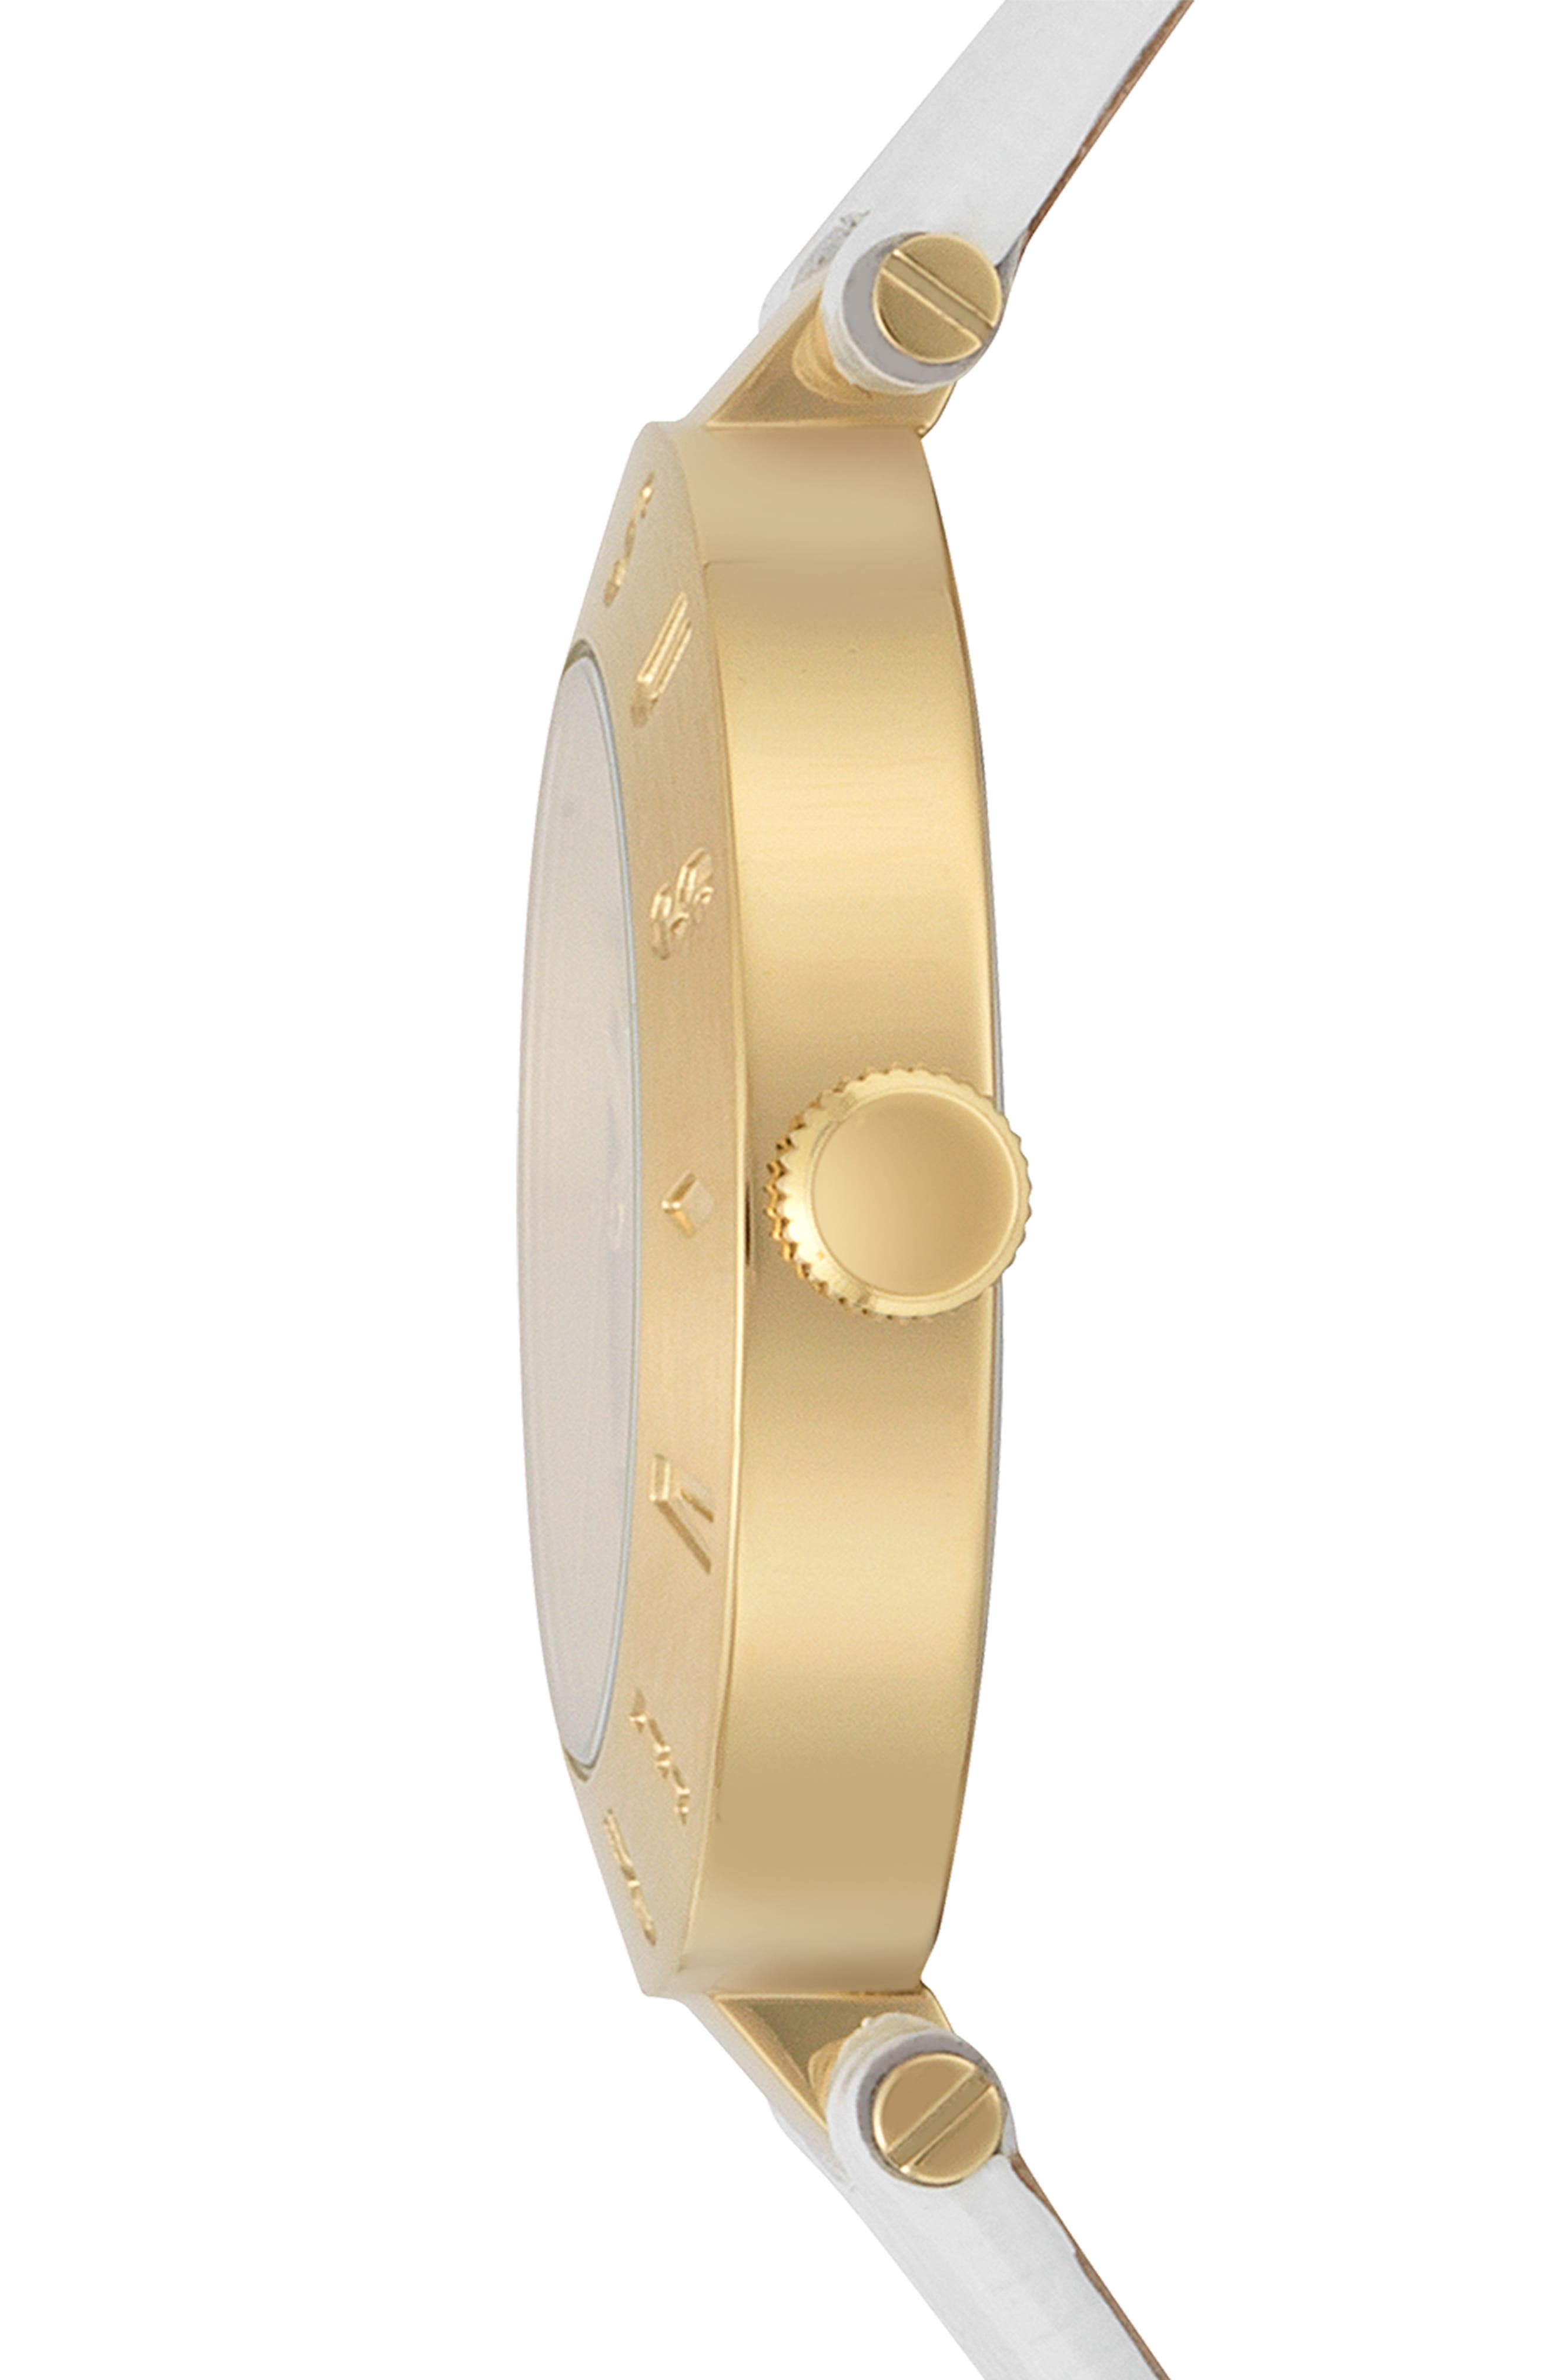 VERSUS VERSACE, Logo Leather Strap Watch, 34mm, Alternate thumbnail 2, color, WHITE/ GOLD